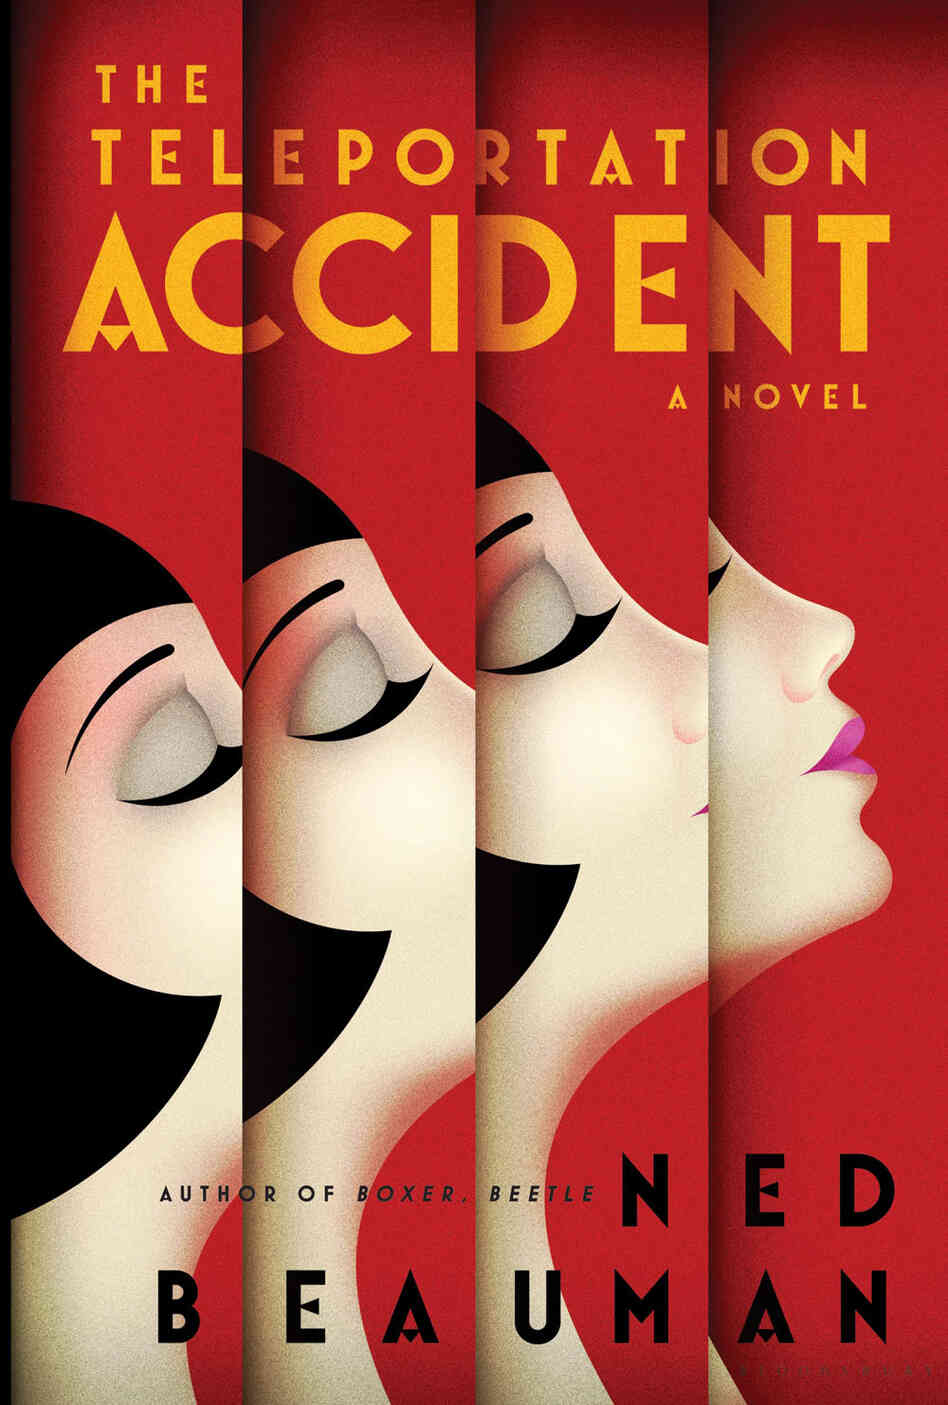 Simple Book Cover Review : Book review the teleportation accident by ned beauman npr